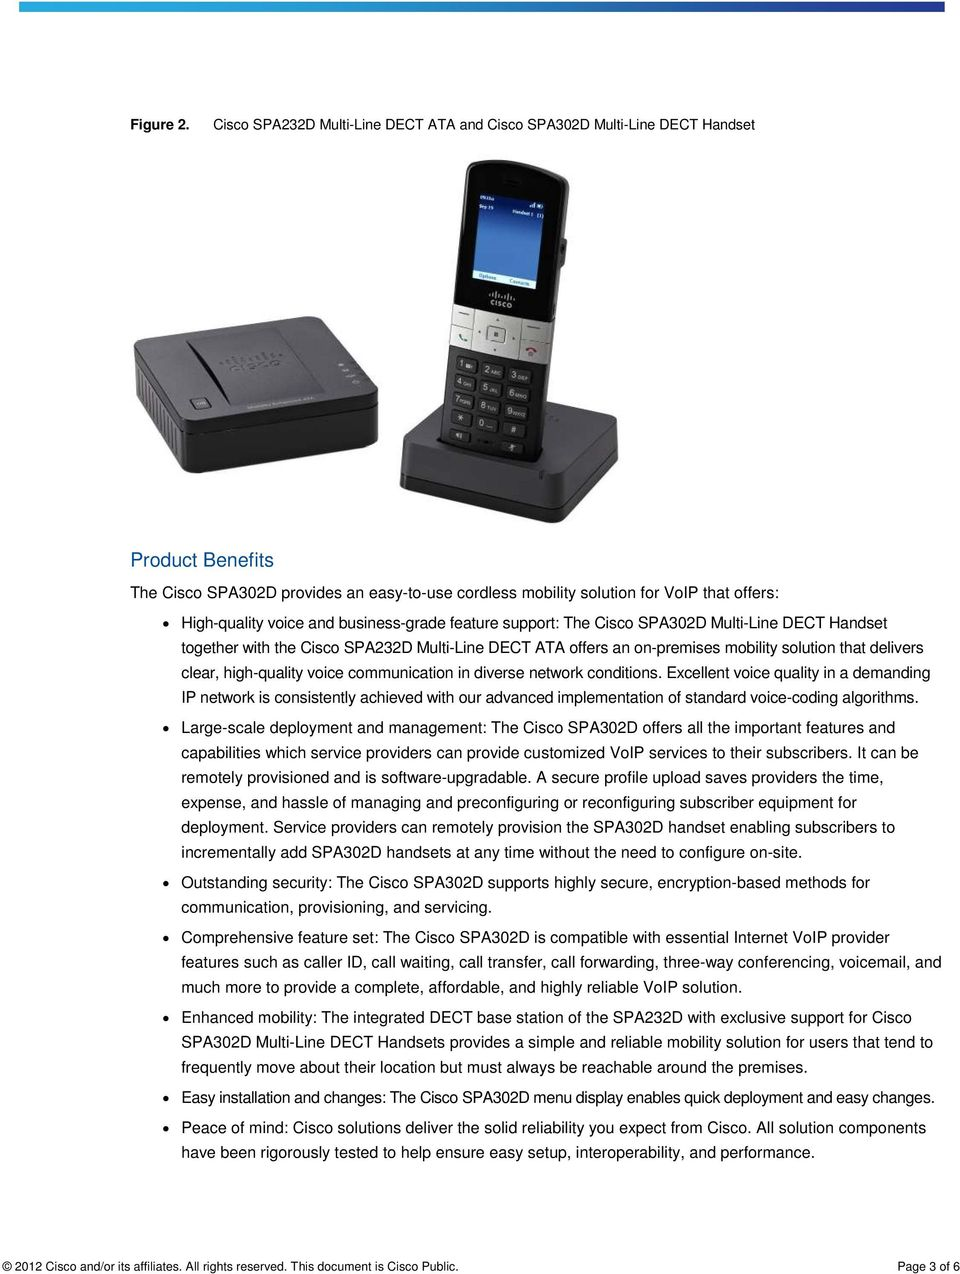 voice and business-grade feature support: The Cisco SPA302D Multi-Line DECT Handset together with the Cisco SPA232D Multi-Line DECT ATA offers an on-premises mobility solution that delivers clear,